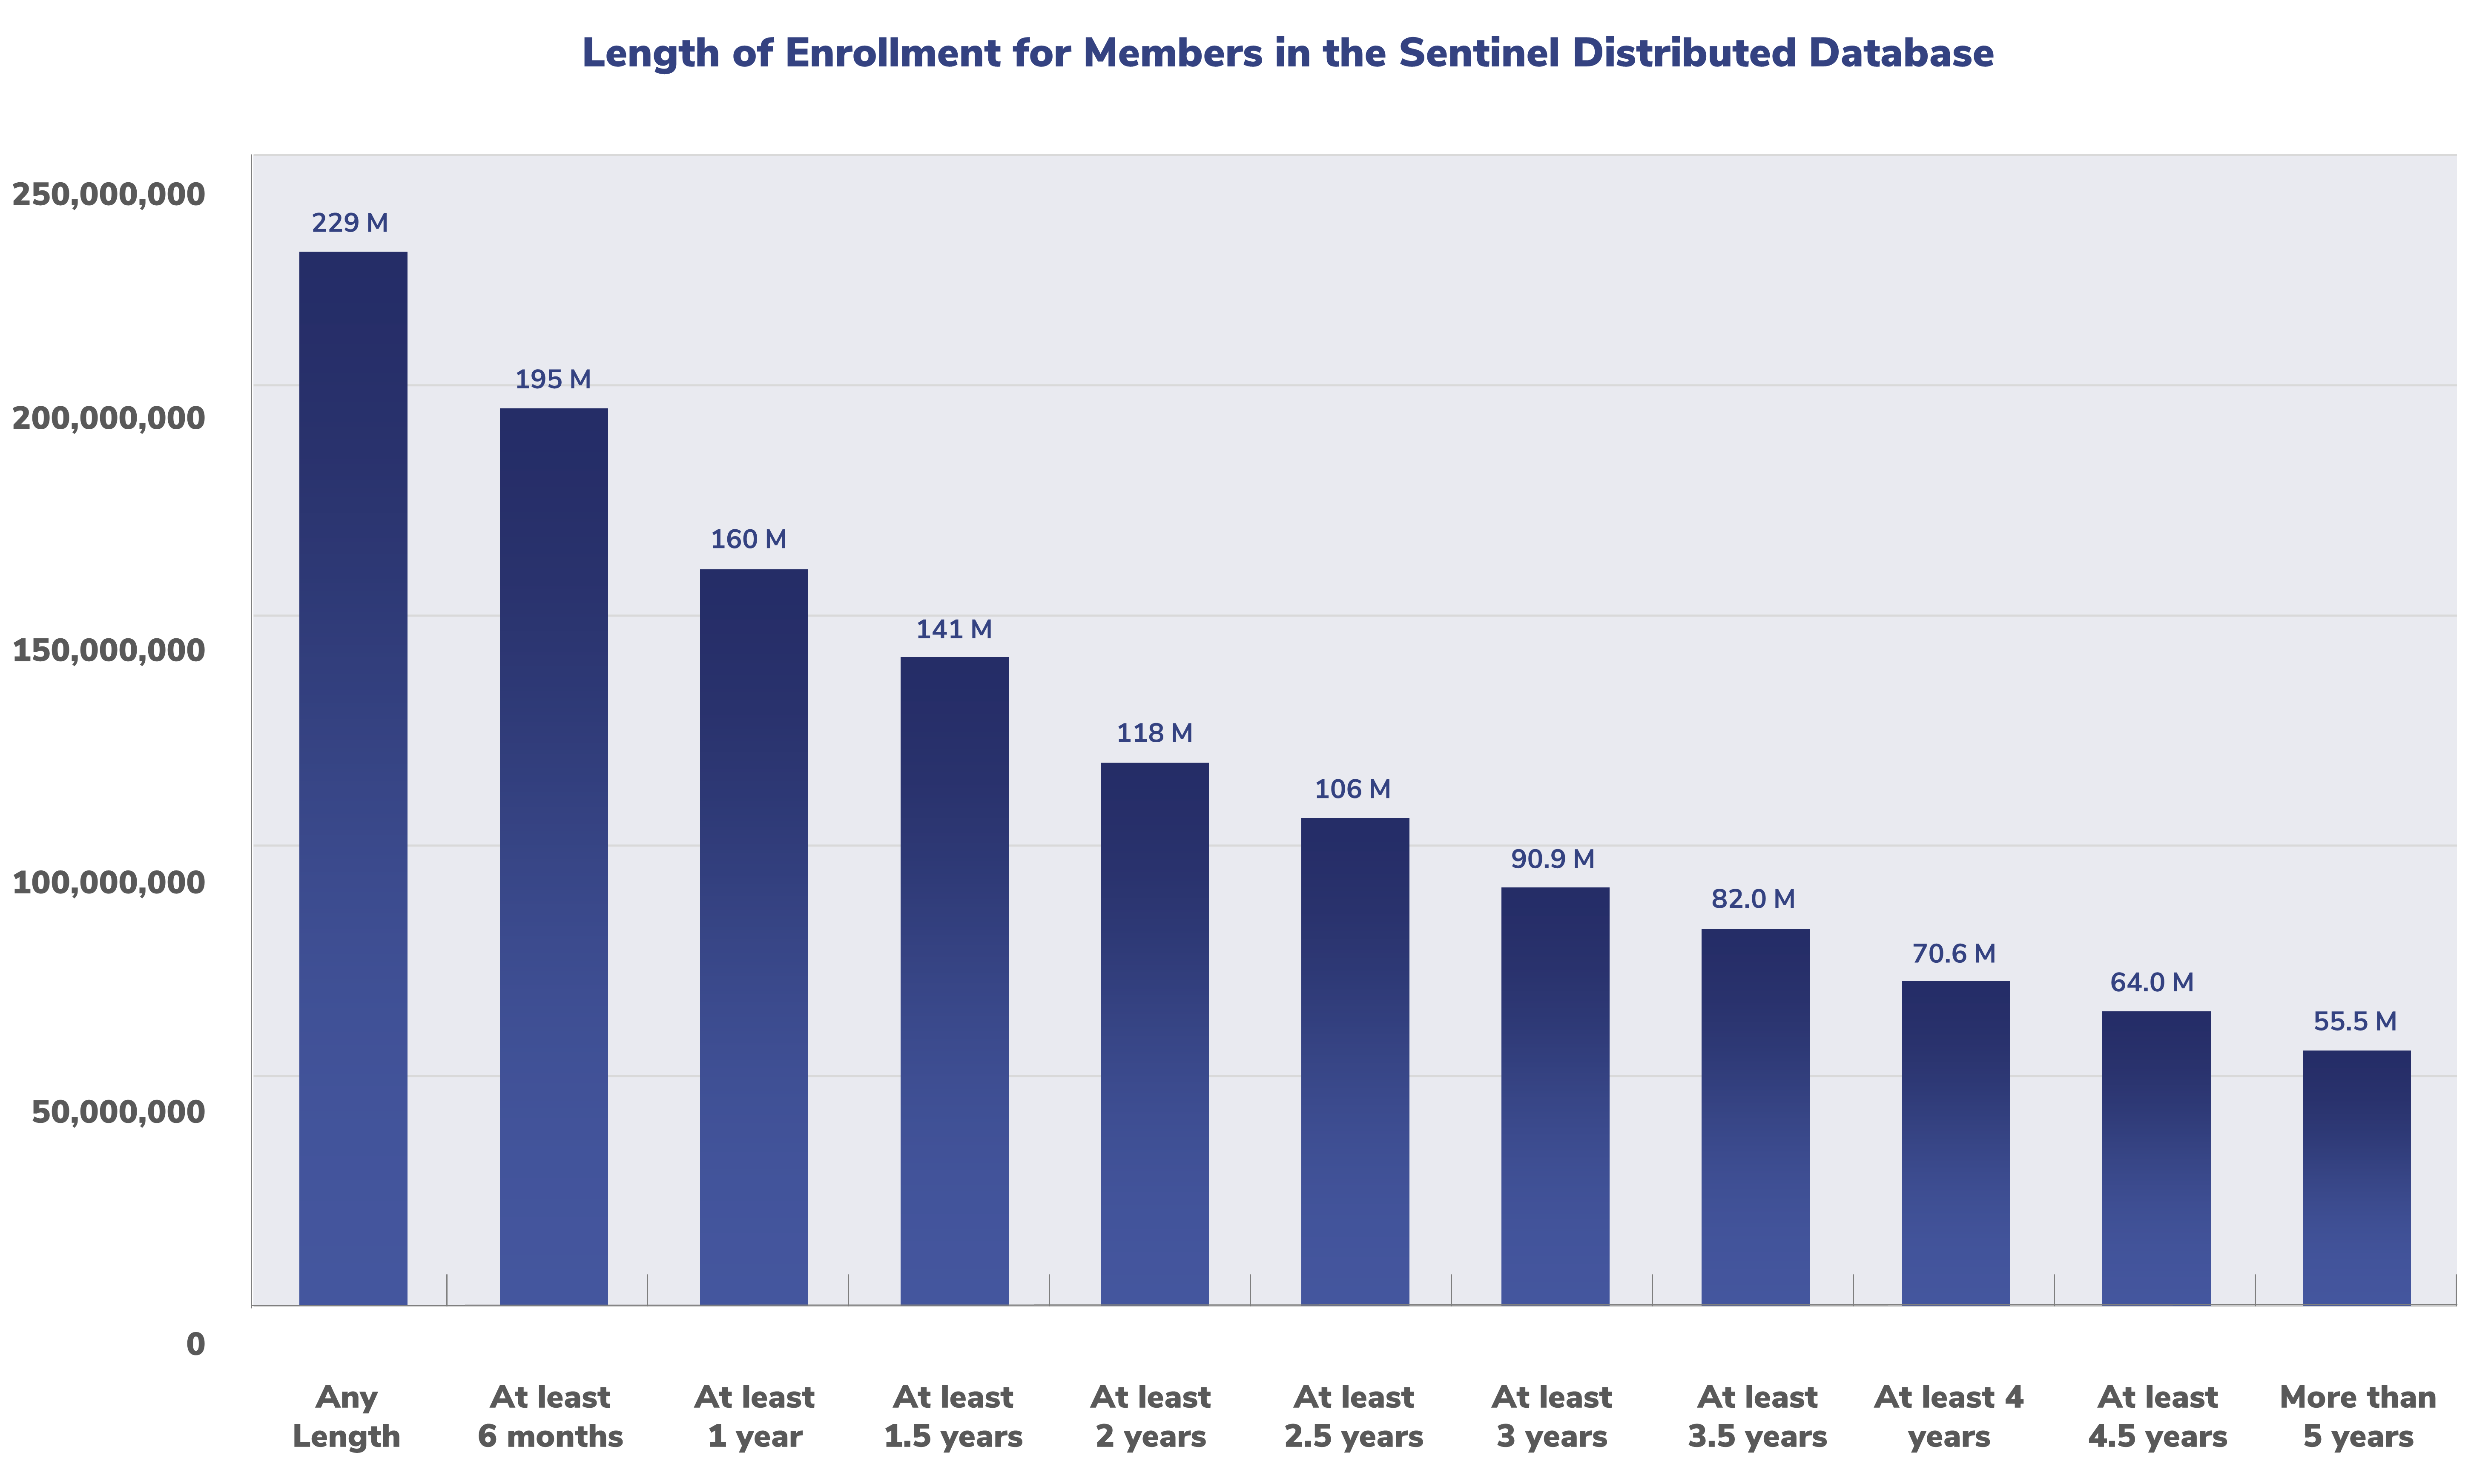 This graph shows the distribution of enrollment span length within the Sentinel Distributed Database.